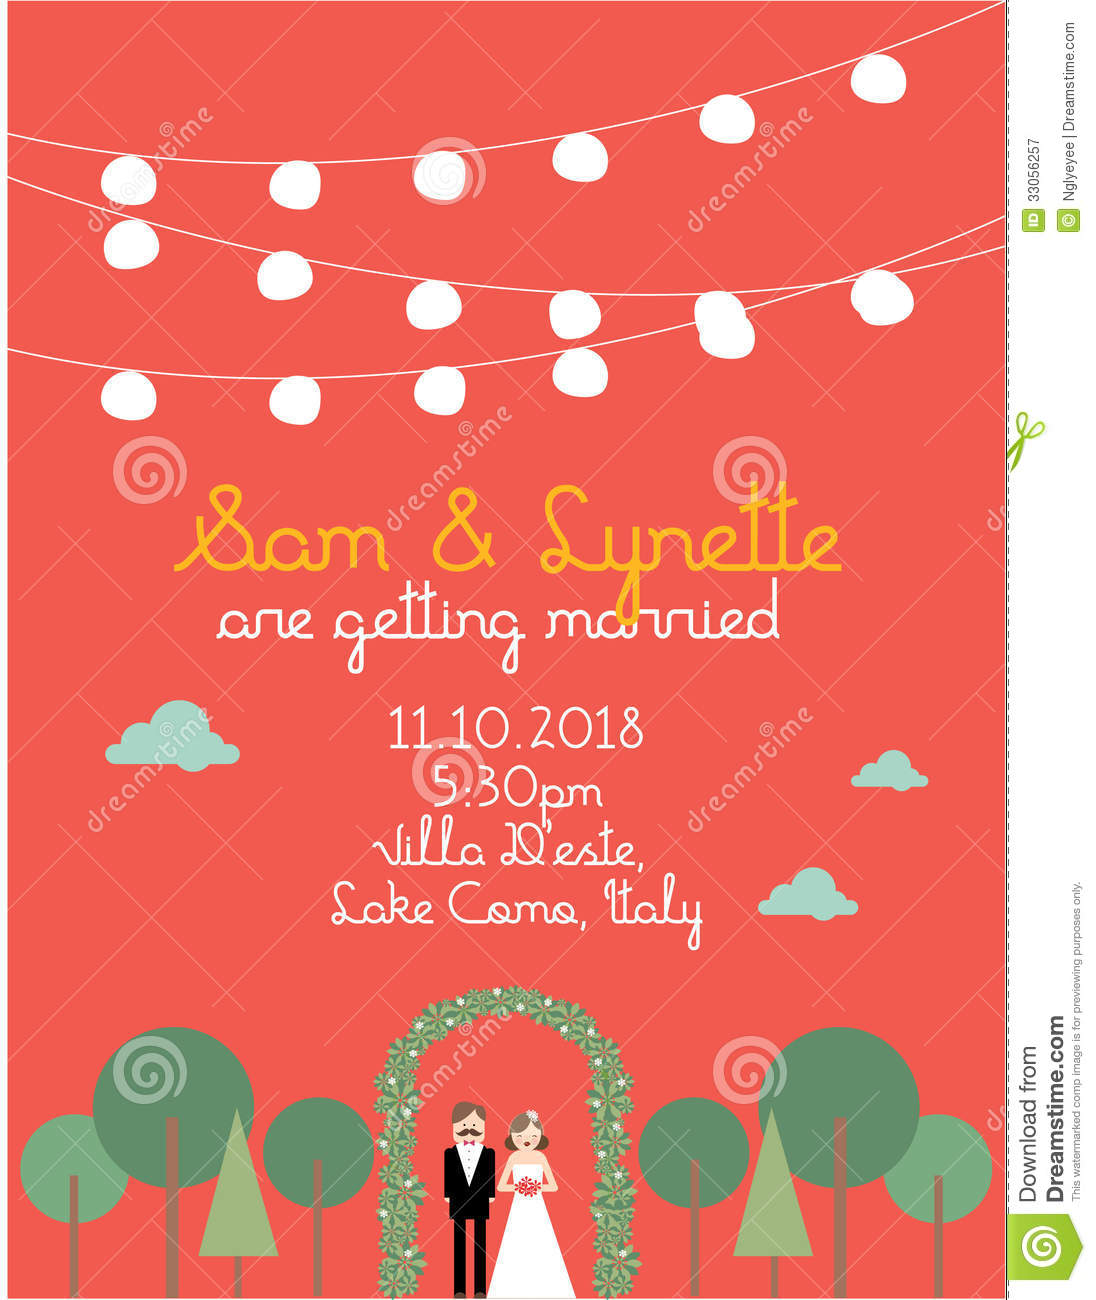 Wedding Invitation Card Template /illustration Stock Illustration ...